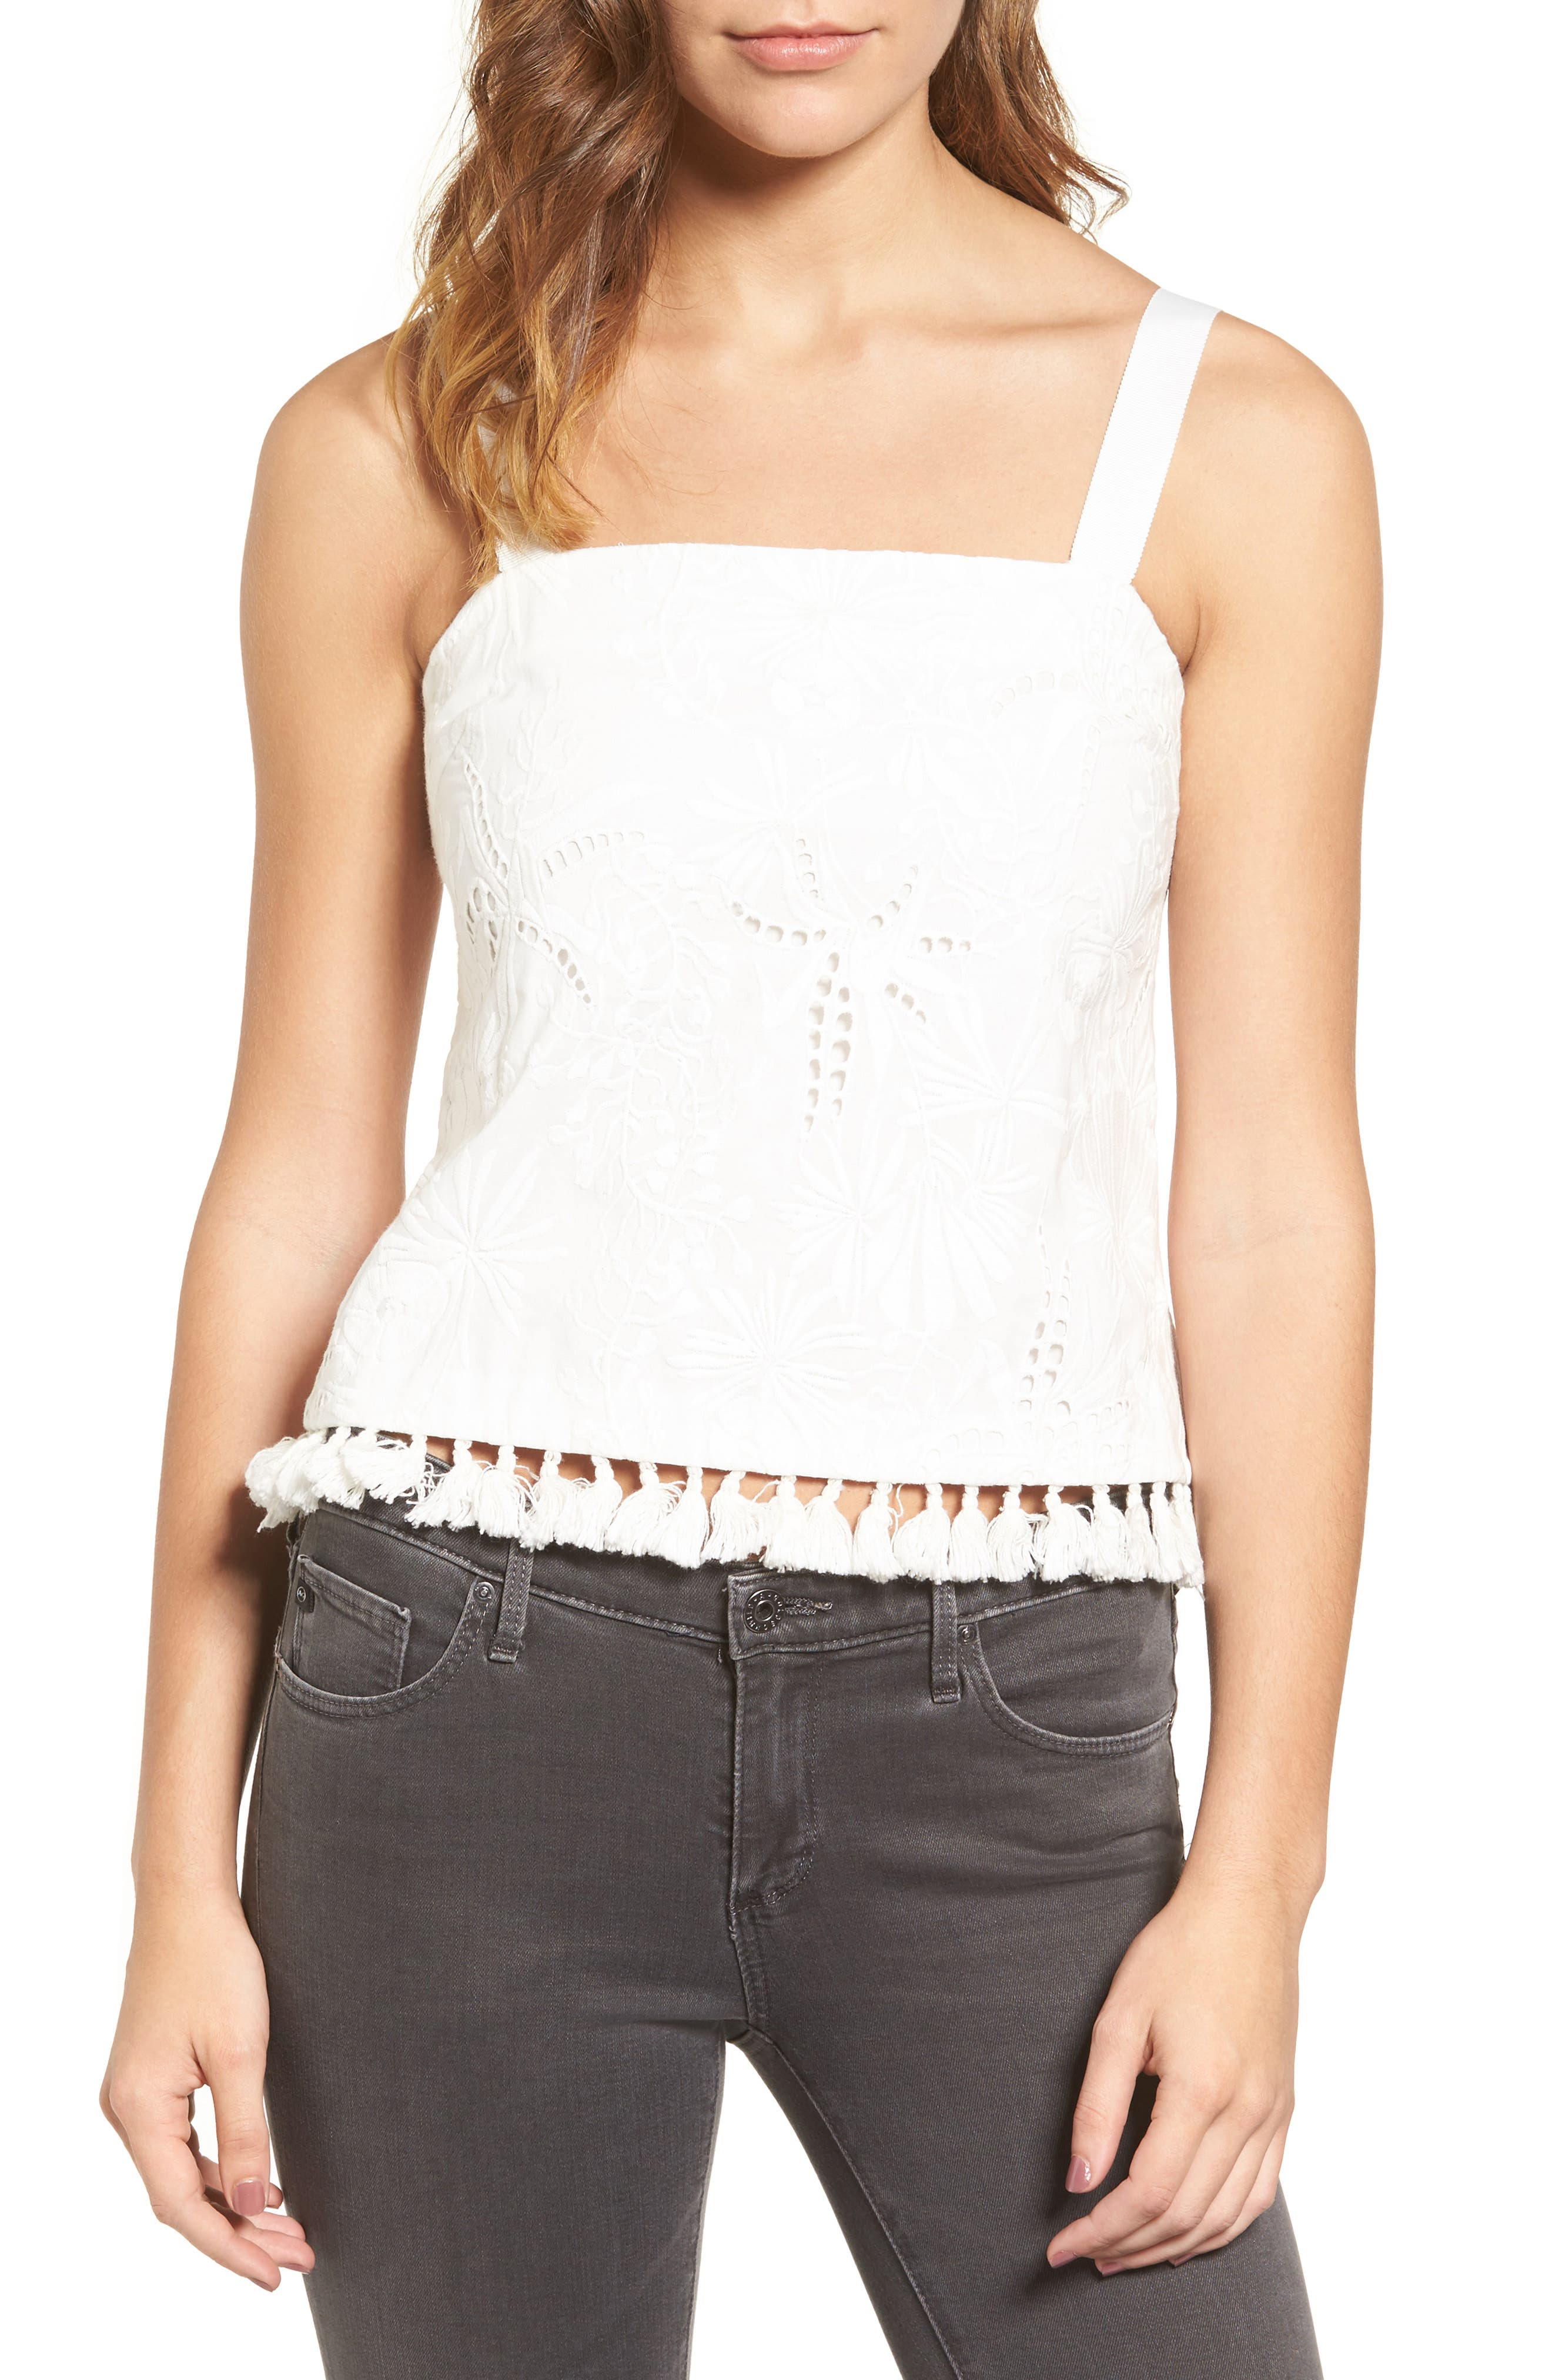 Alternate Image 1 Selected - cooper & ella Camila Embroidered Cotton Tank